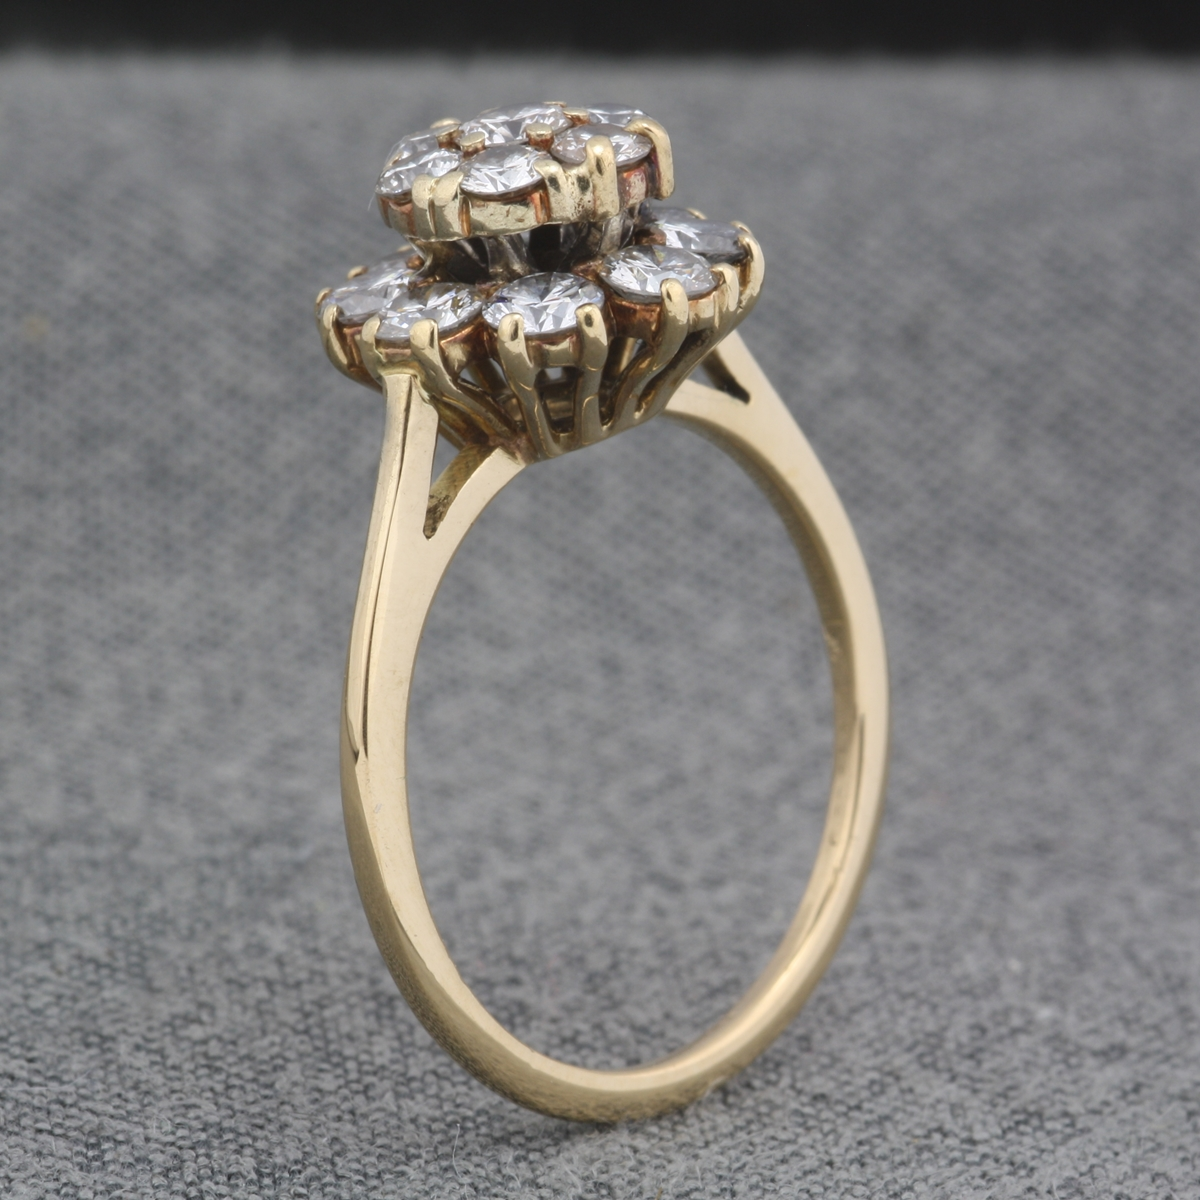 diamond ring eragem rings vintage owned pre wedding antique engagement carat